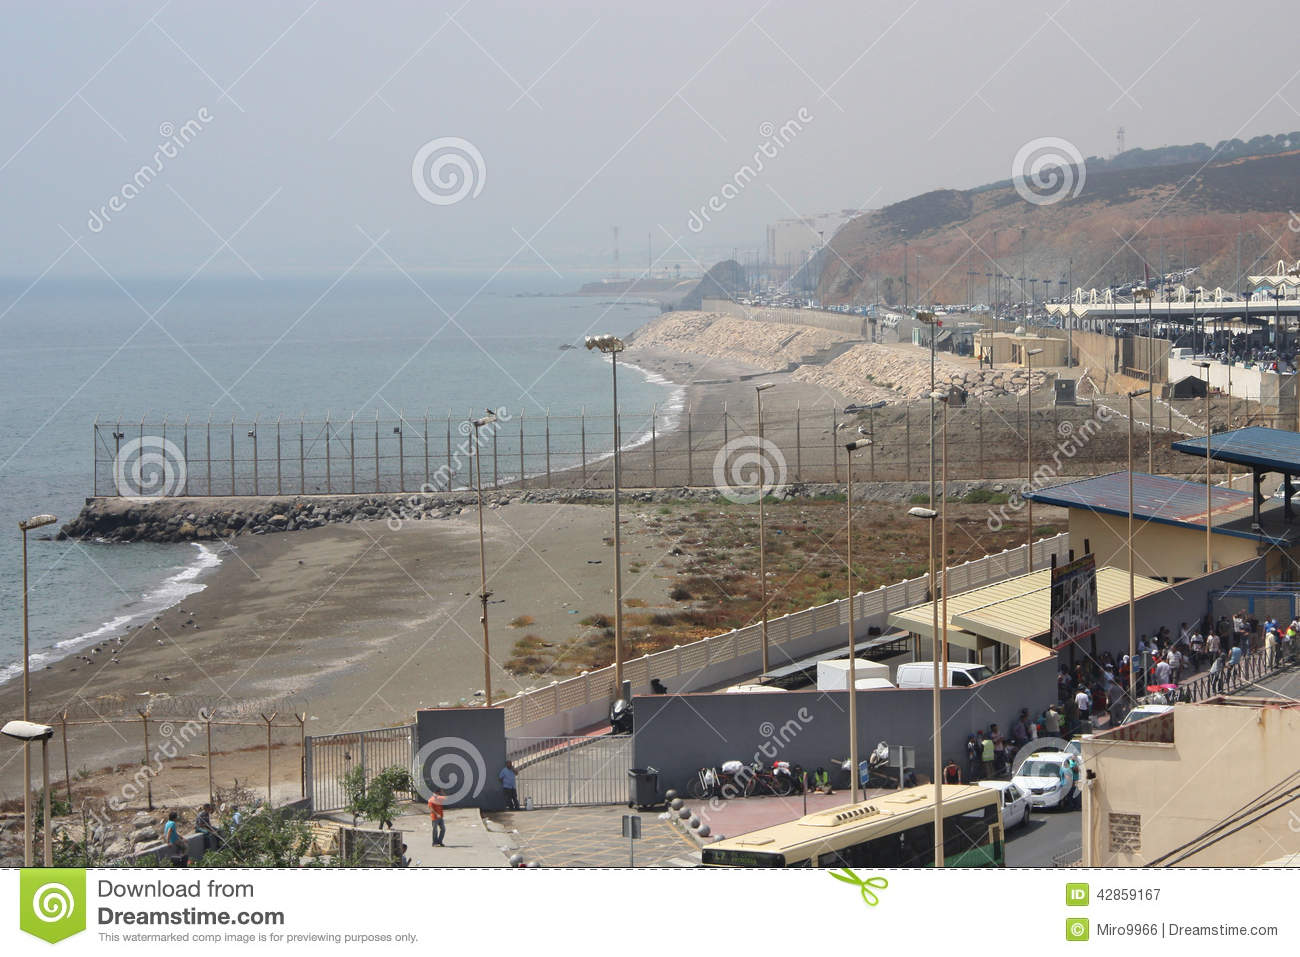 Sakamichi further Plastic Bags Clipart besides Editorial Photography Eu Border Ceuta Image Sea Side Fence Separating Barrier Morocco Spain North African Coast Image42859167 in addition Sku K 4074 further Back In Mexicali. on fence guard